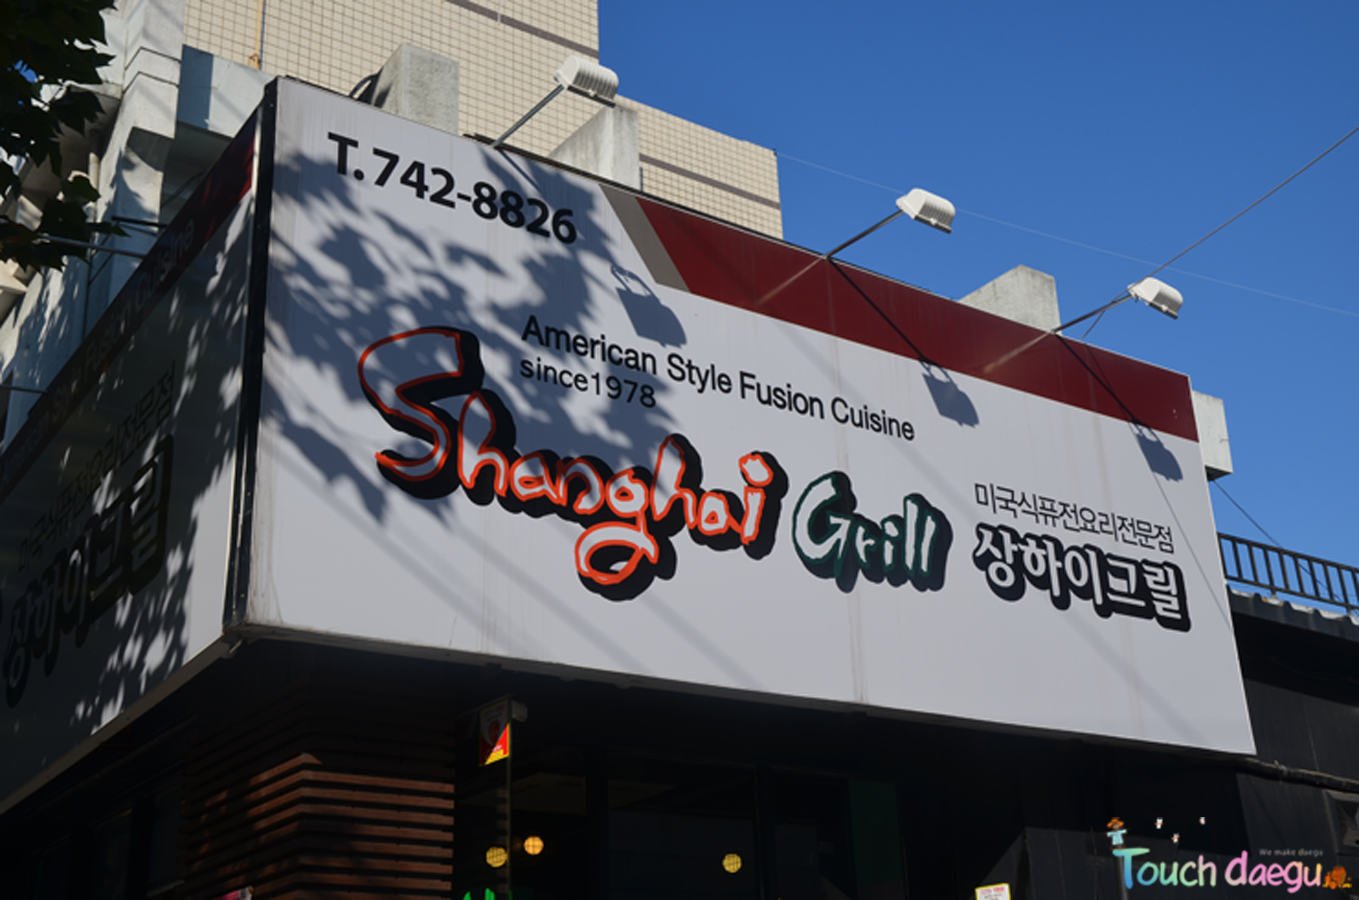 American-Chinese fusion restaurant Shanghai Grill